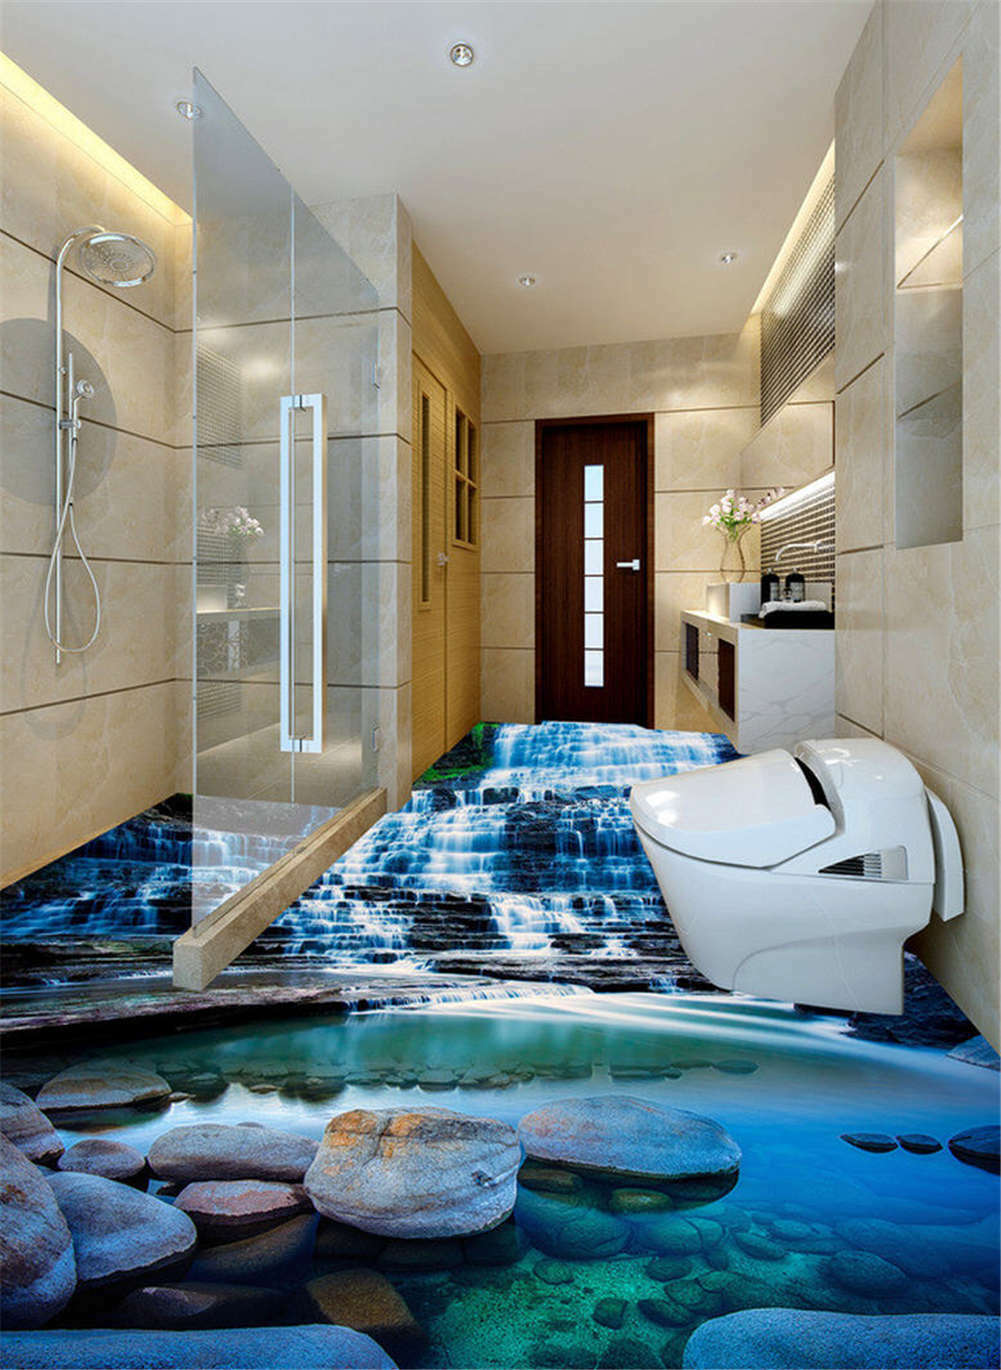 Tranquil Puddle 3D Floor Mural Photo Flooring Wallpaper Home Print Decoration